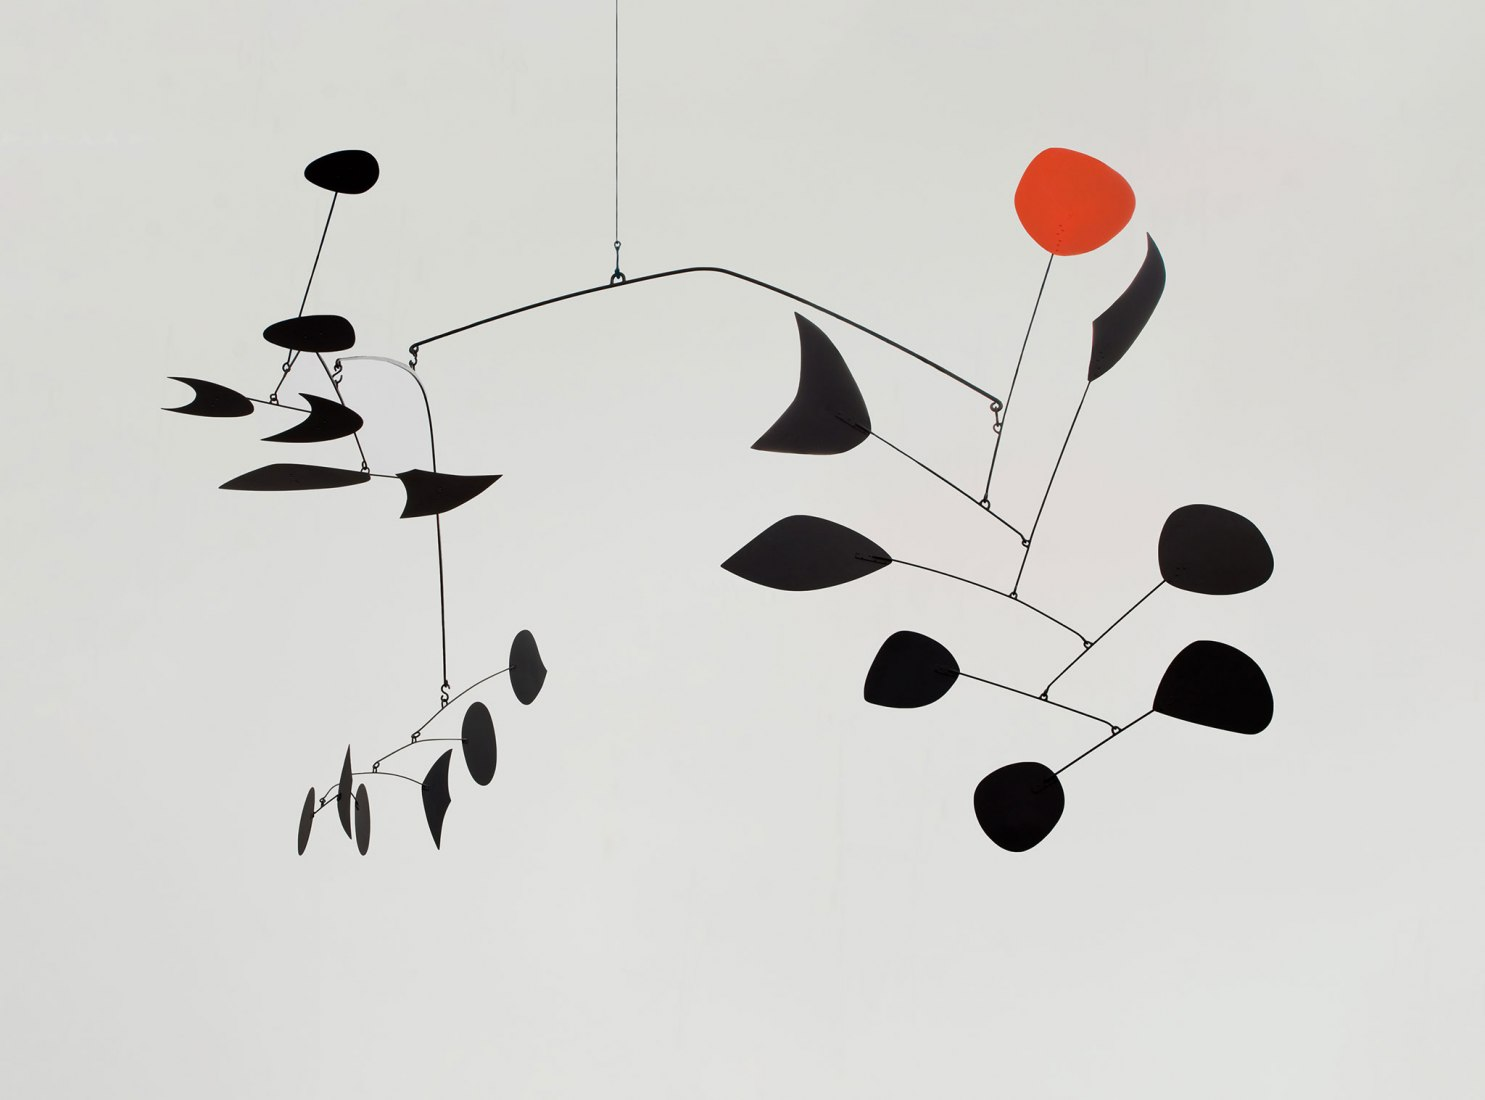 Alexander Calder. Rouge triomphant, 1963 Sheet metal, rod, wire, and paint 110 x 230 x 180 in. © 2019 Calder Foundation, New York / VEGAP, Santander